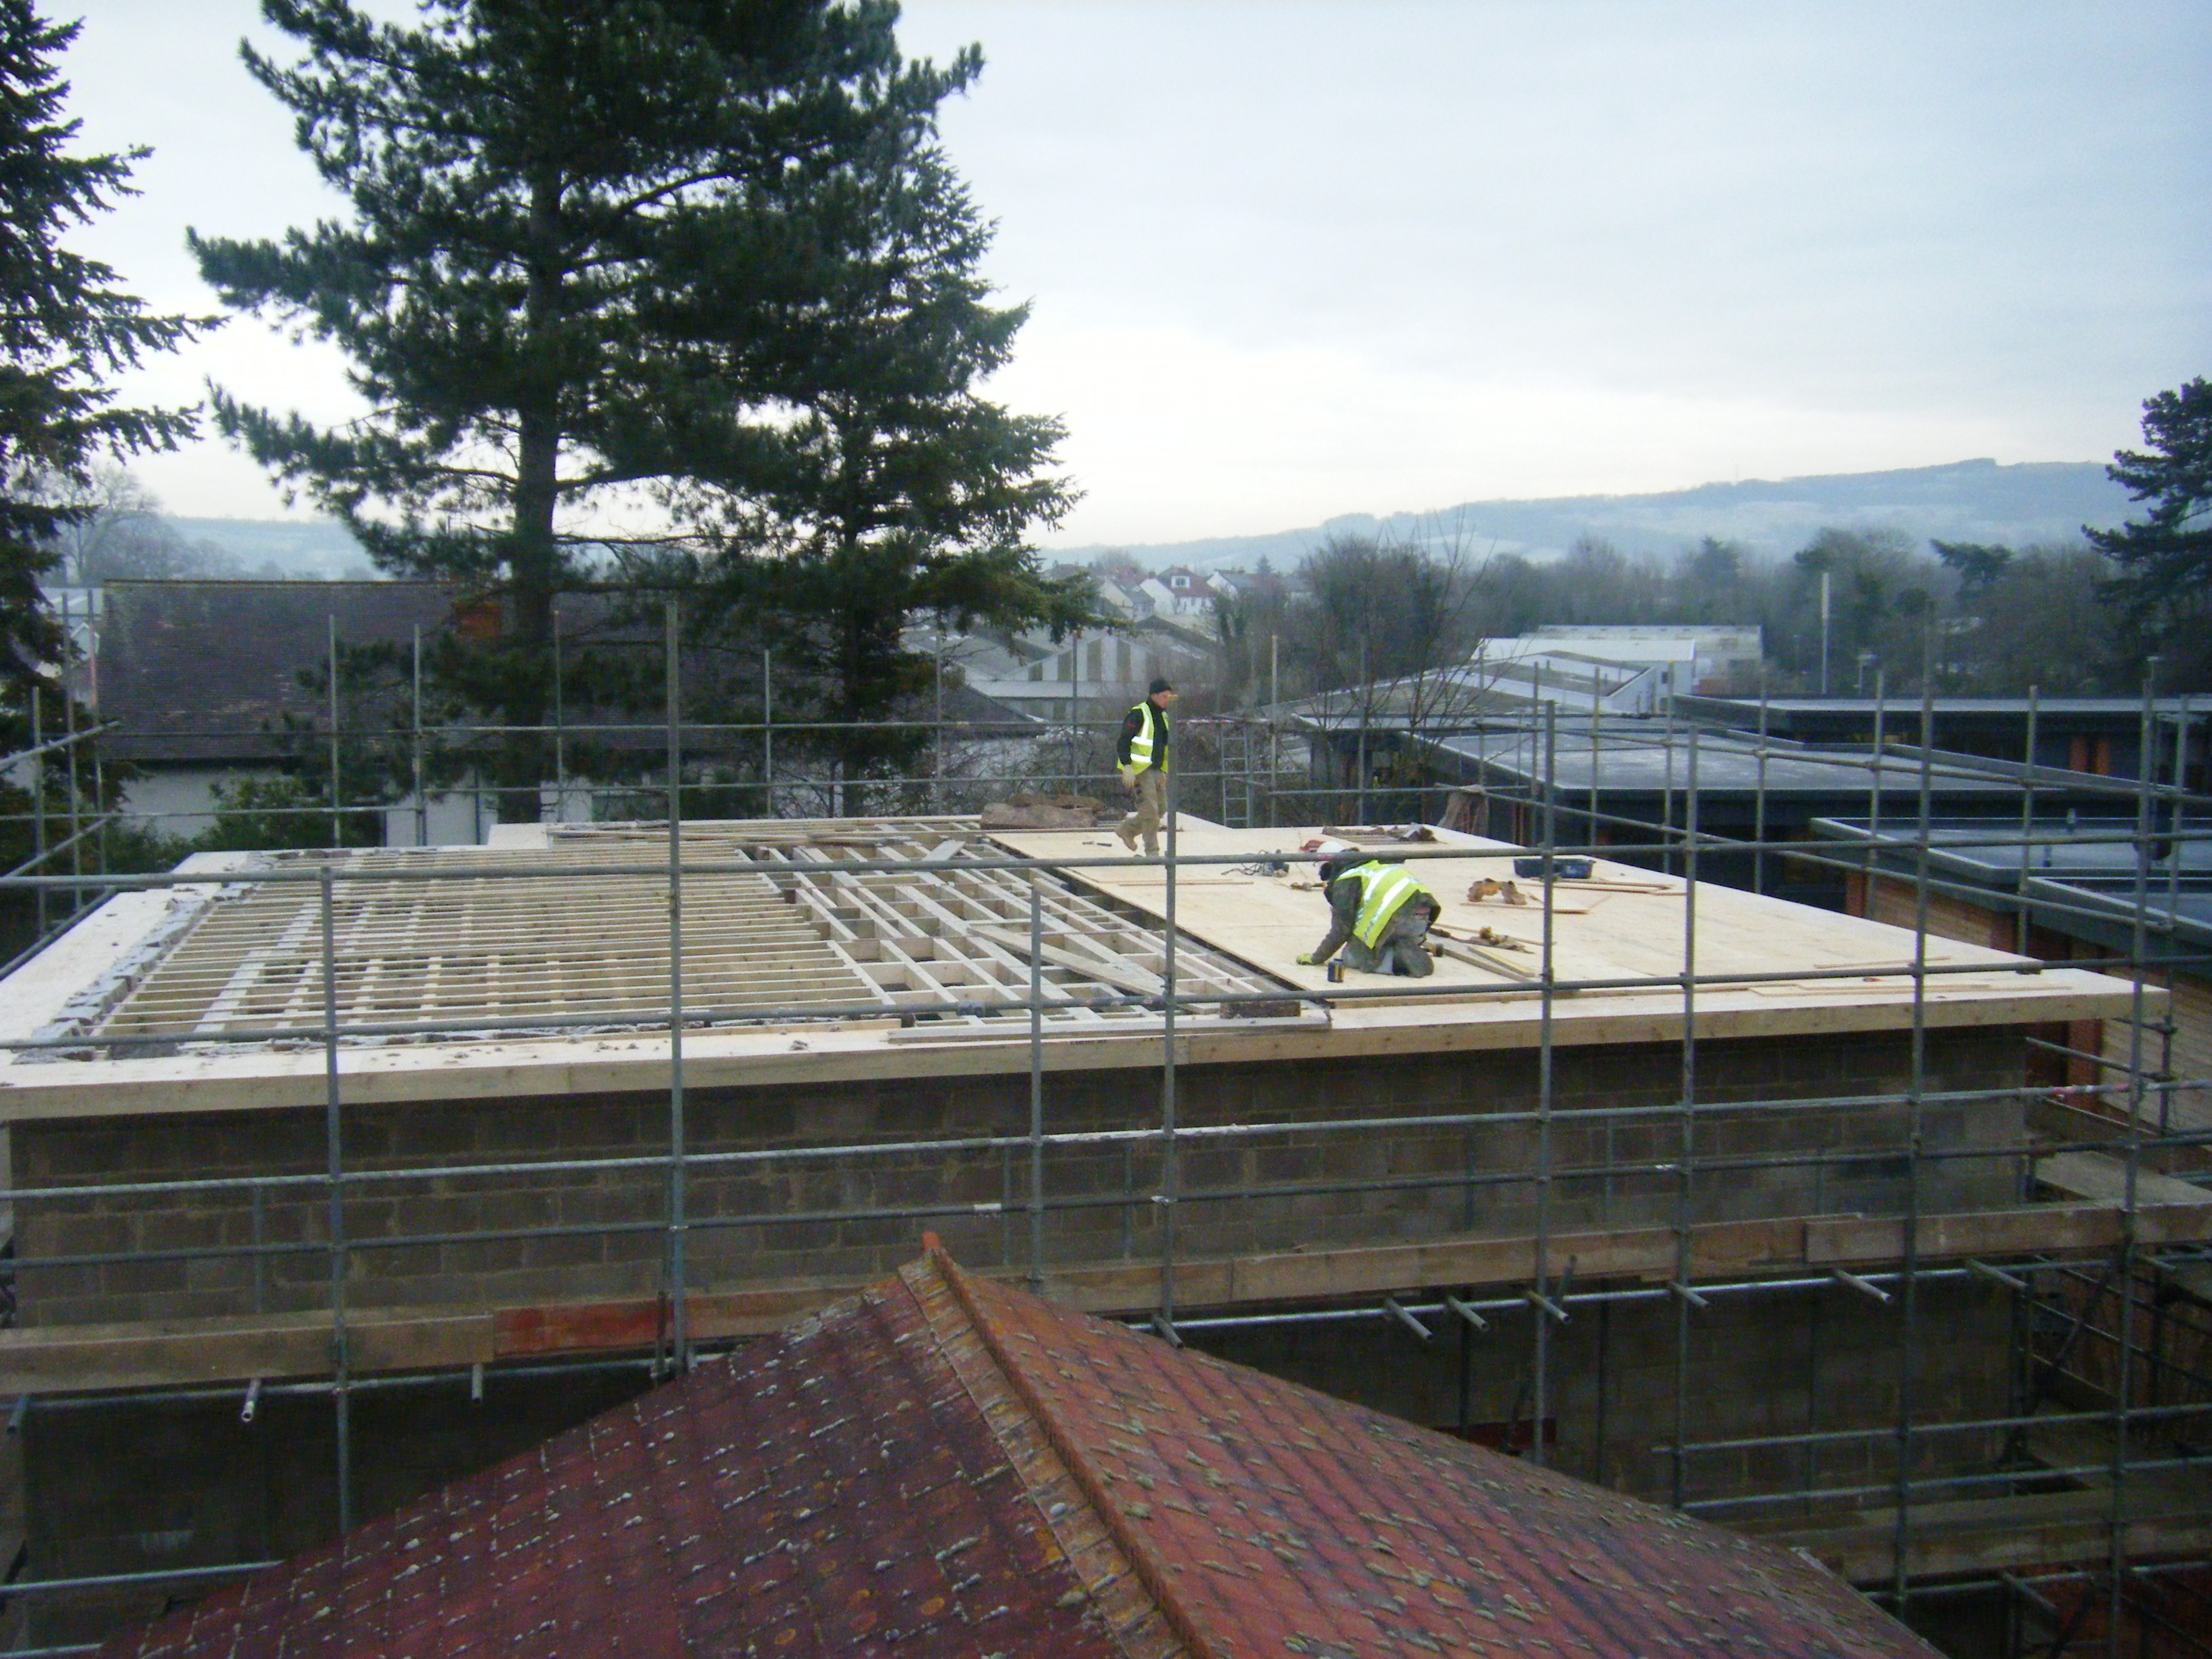 Our extension is progressing despite the cold weather!